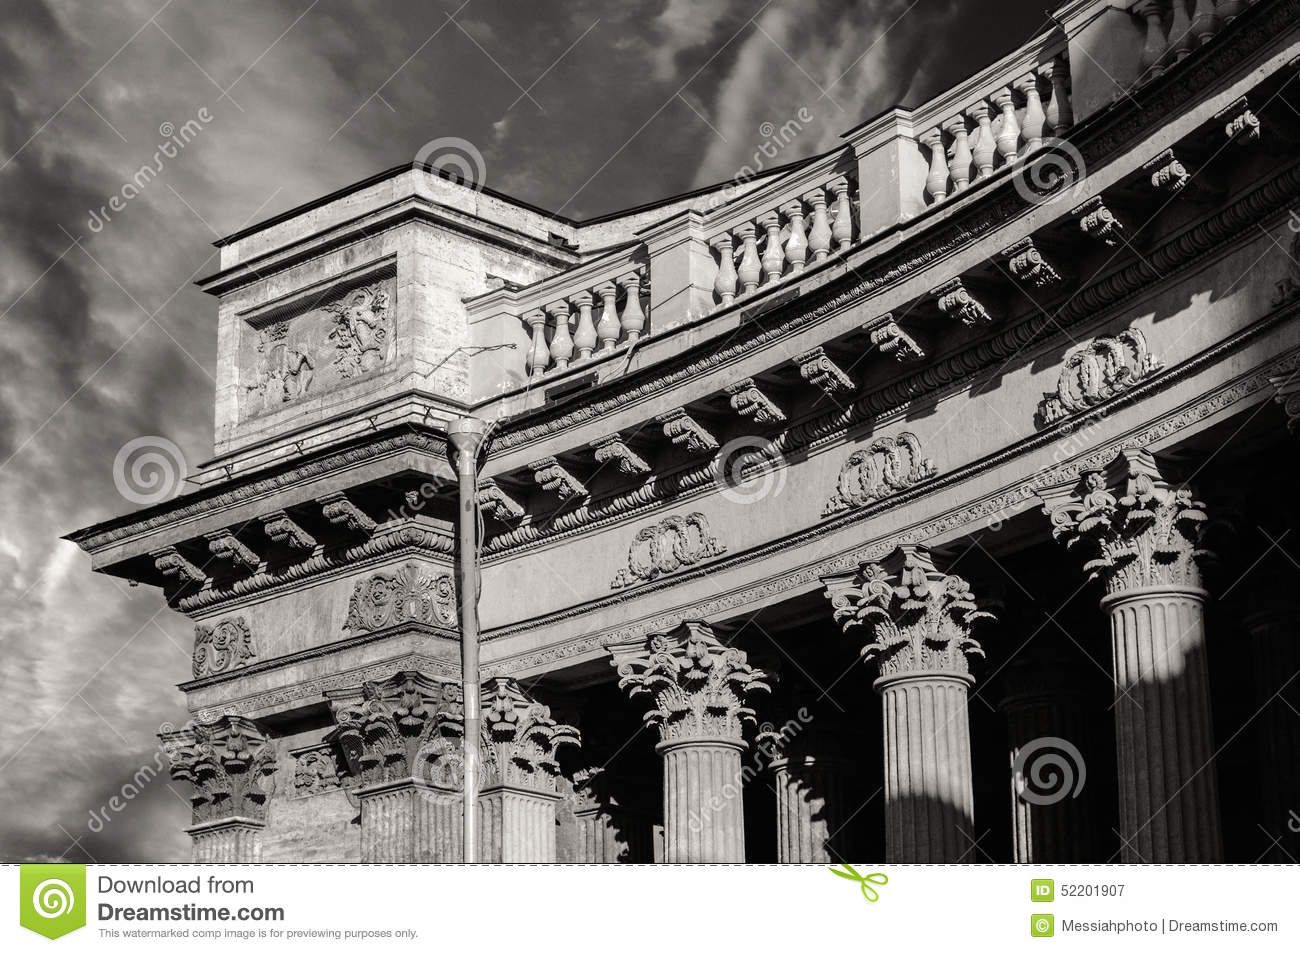 Download Colonnade Of The Kazan Cathedral Stock Image - Image of architecture, building: 52201907